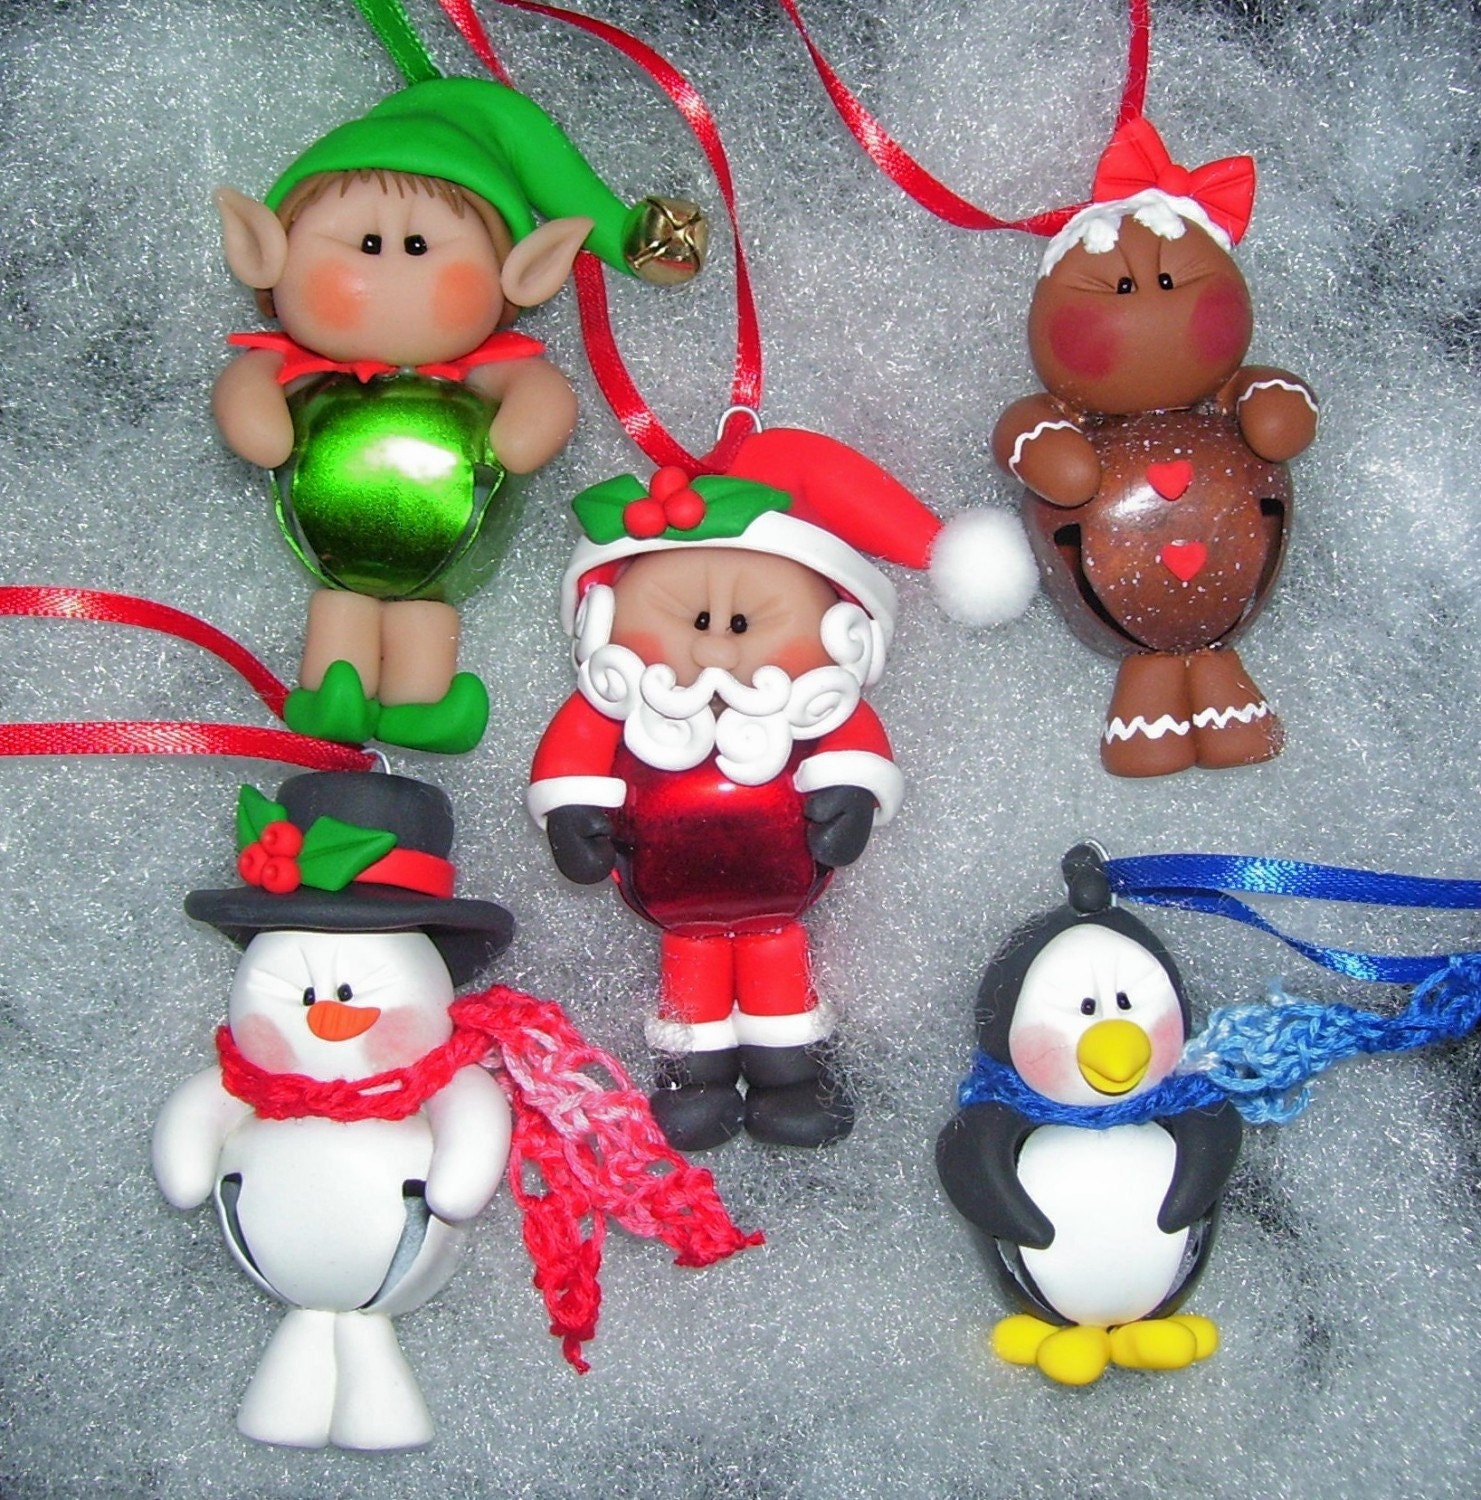 Elf Jingle Bell Buddy Polymer Clay Christmas Ornament - Free Personalization